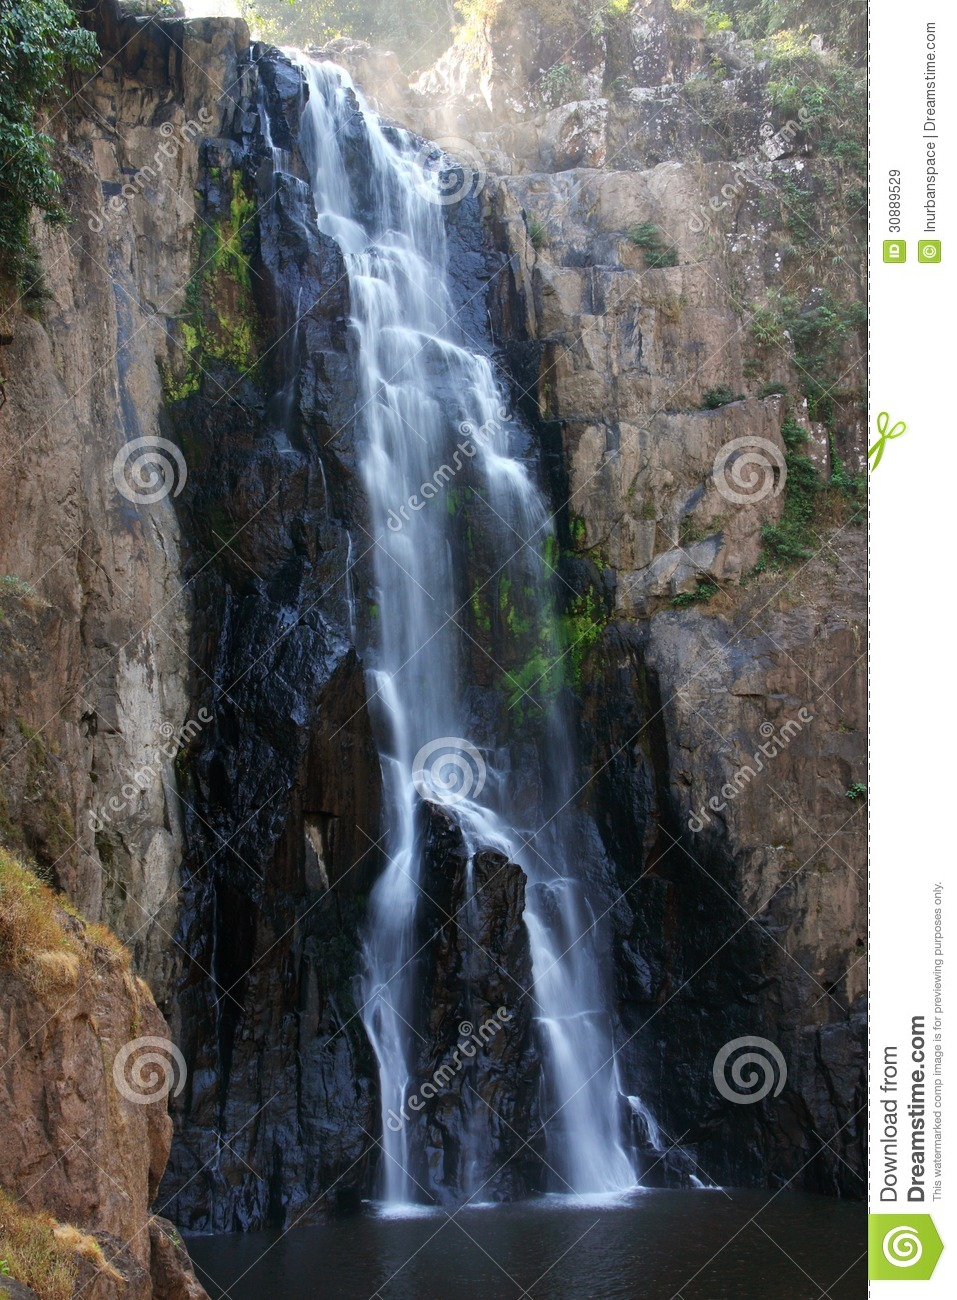 Fall Landscape Free Wallpaper Cliff Of Waterfall Thailand Stock Image Image 30889529